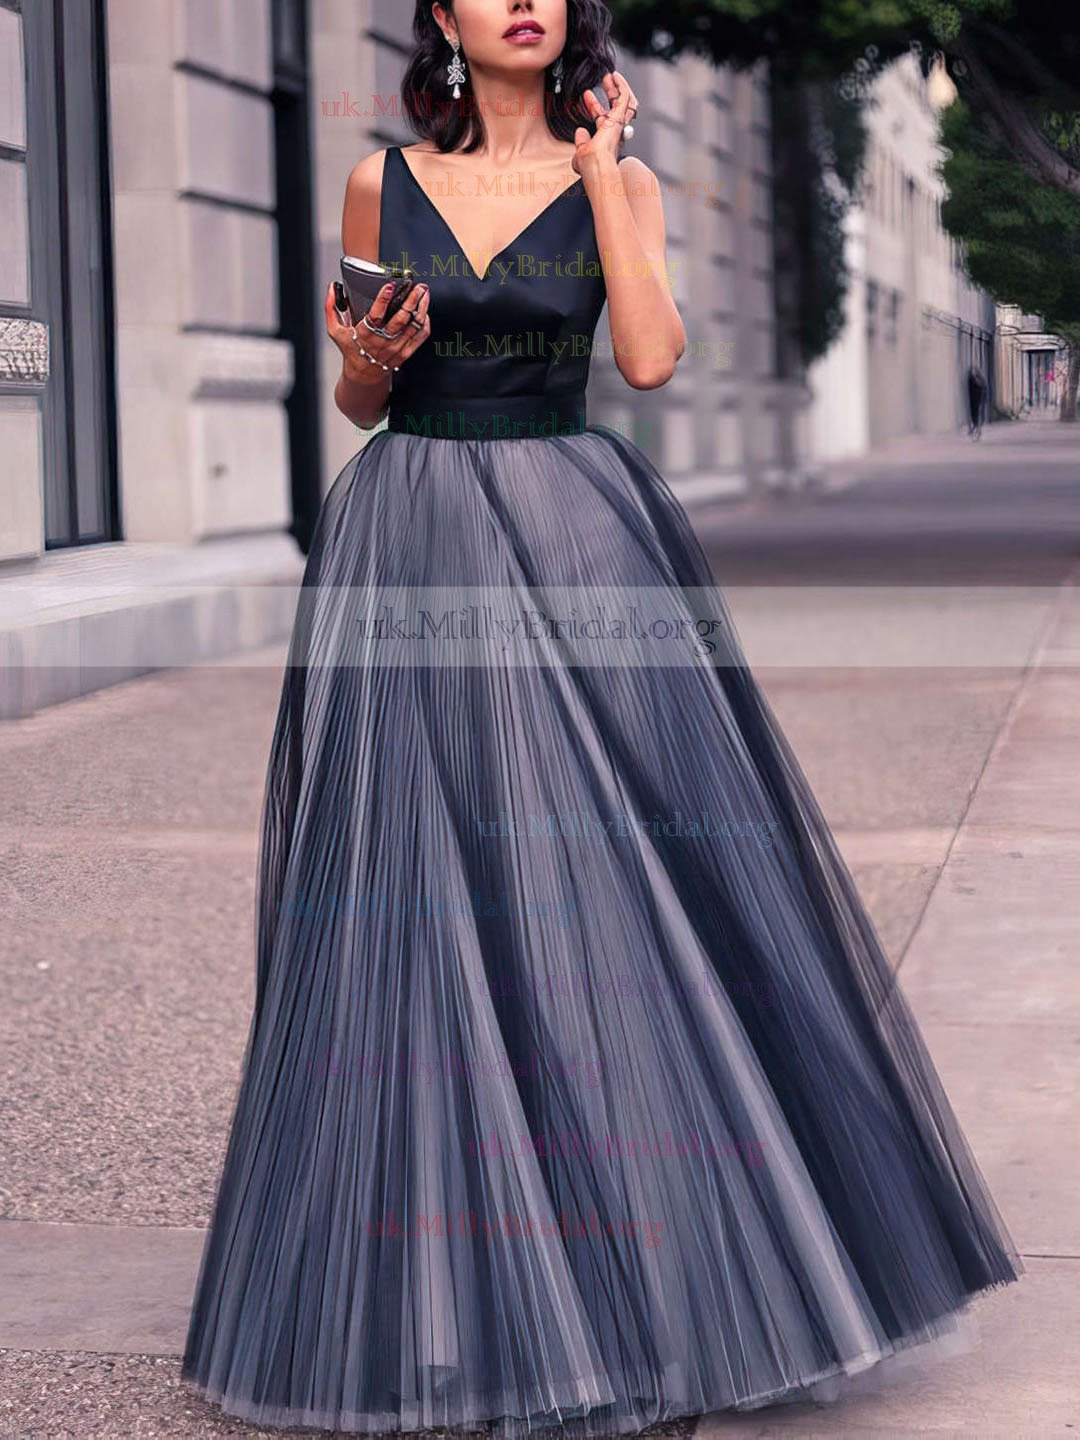 http://uk.millybridal.org/product/princess-v-neck-tulle-floor-length-with-pleats-new-style-prom-dresses-ukm020102454-17355.html?utm_source=minipost&utm_medium=2124&utm_campaign=blog